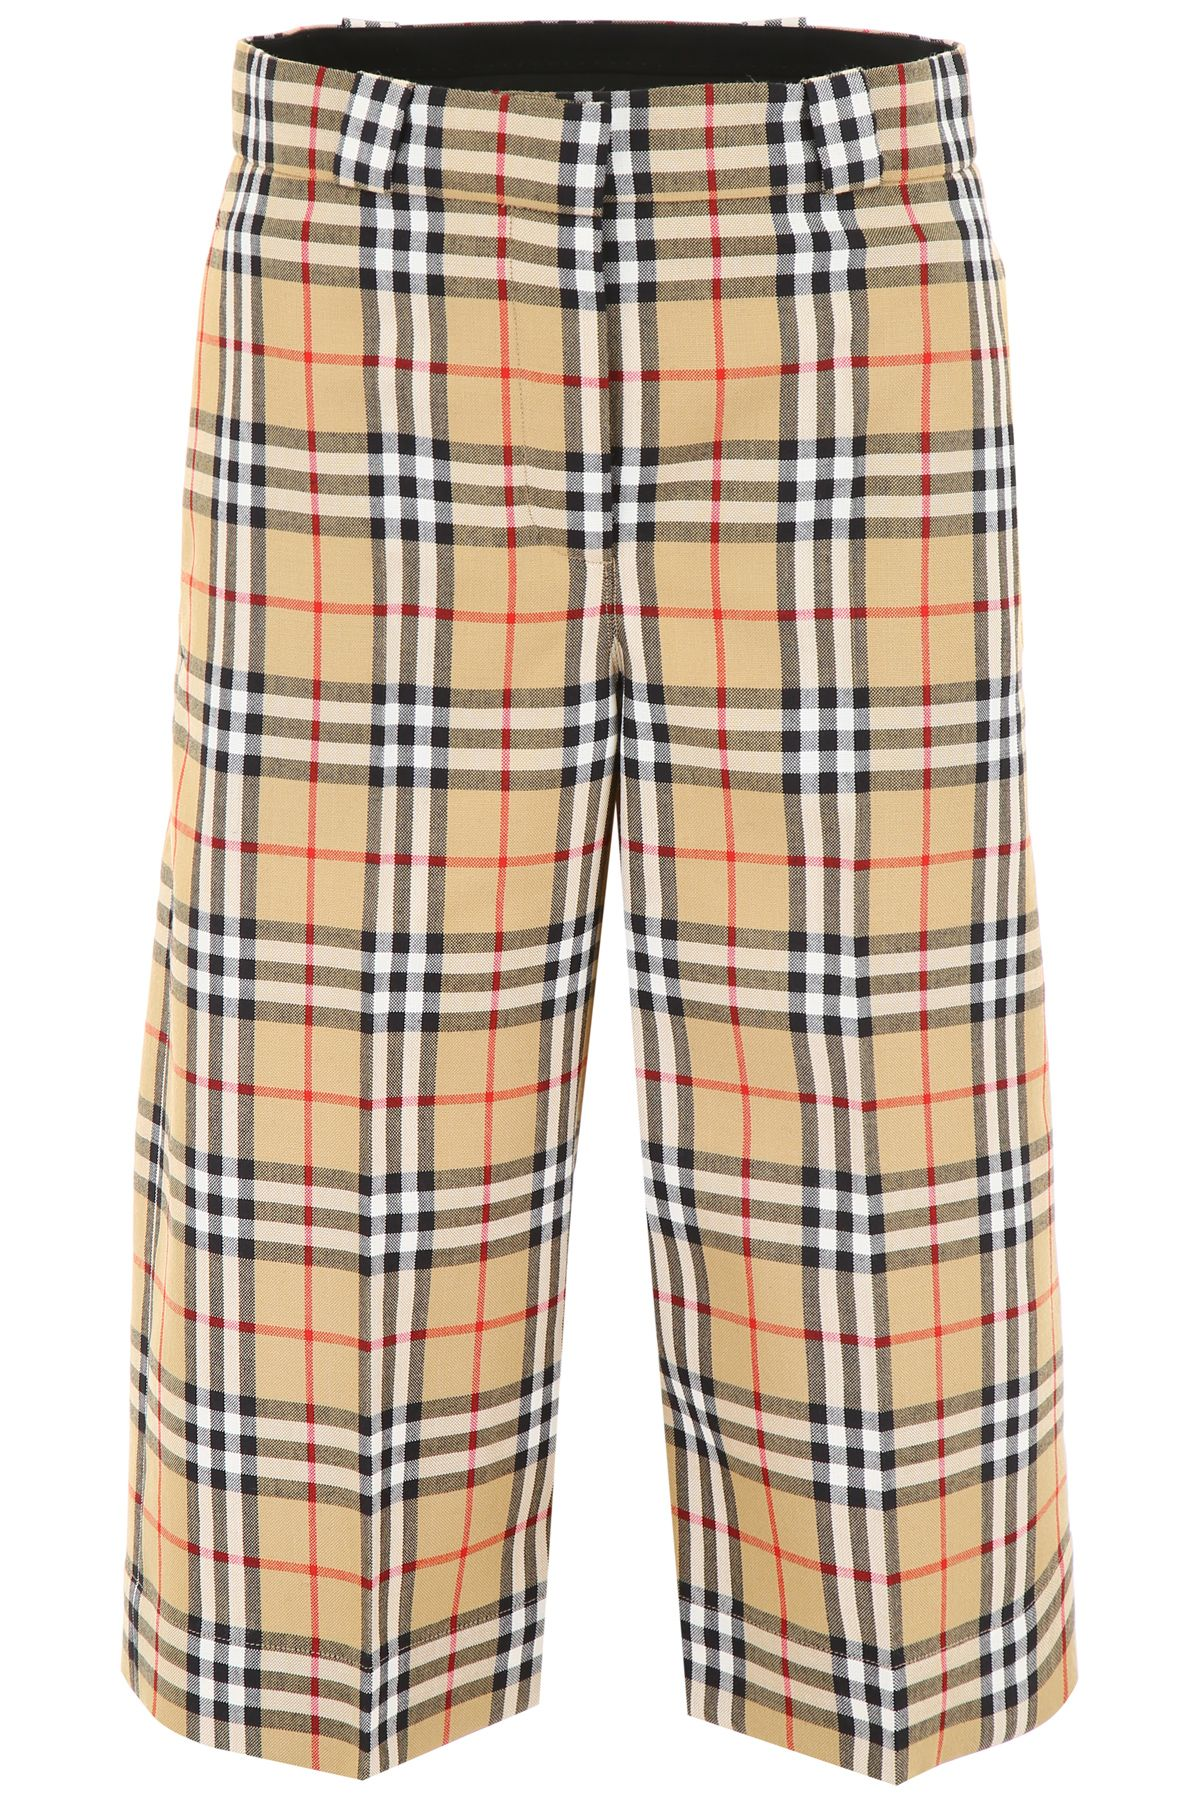 burberry clothing women osney trousers